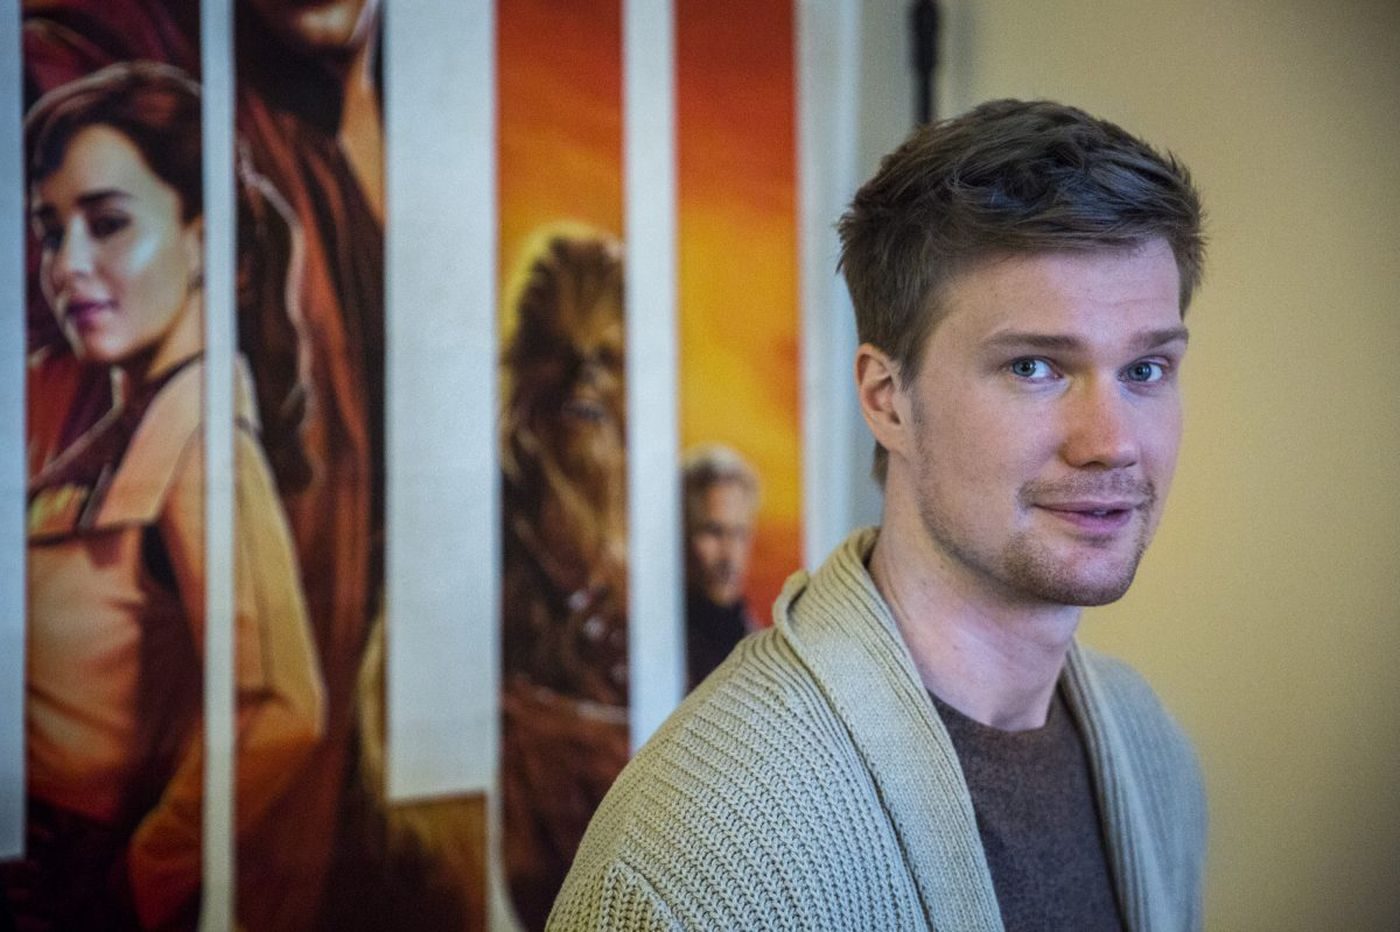 Joonas Suotamo: The tall former Penn State basketball player turned Chewbacca